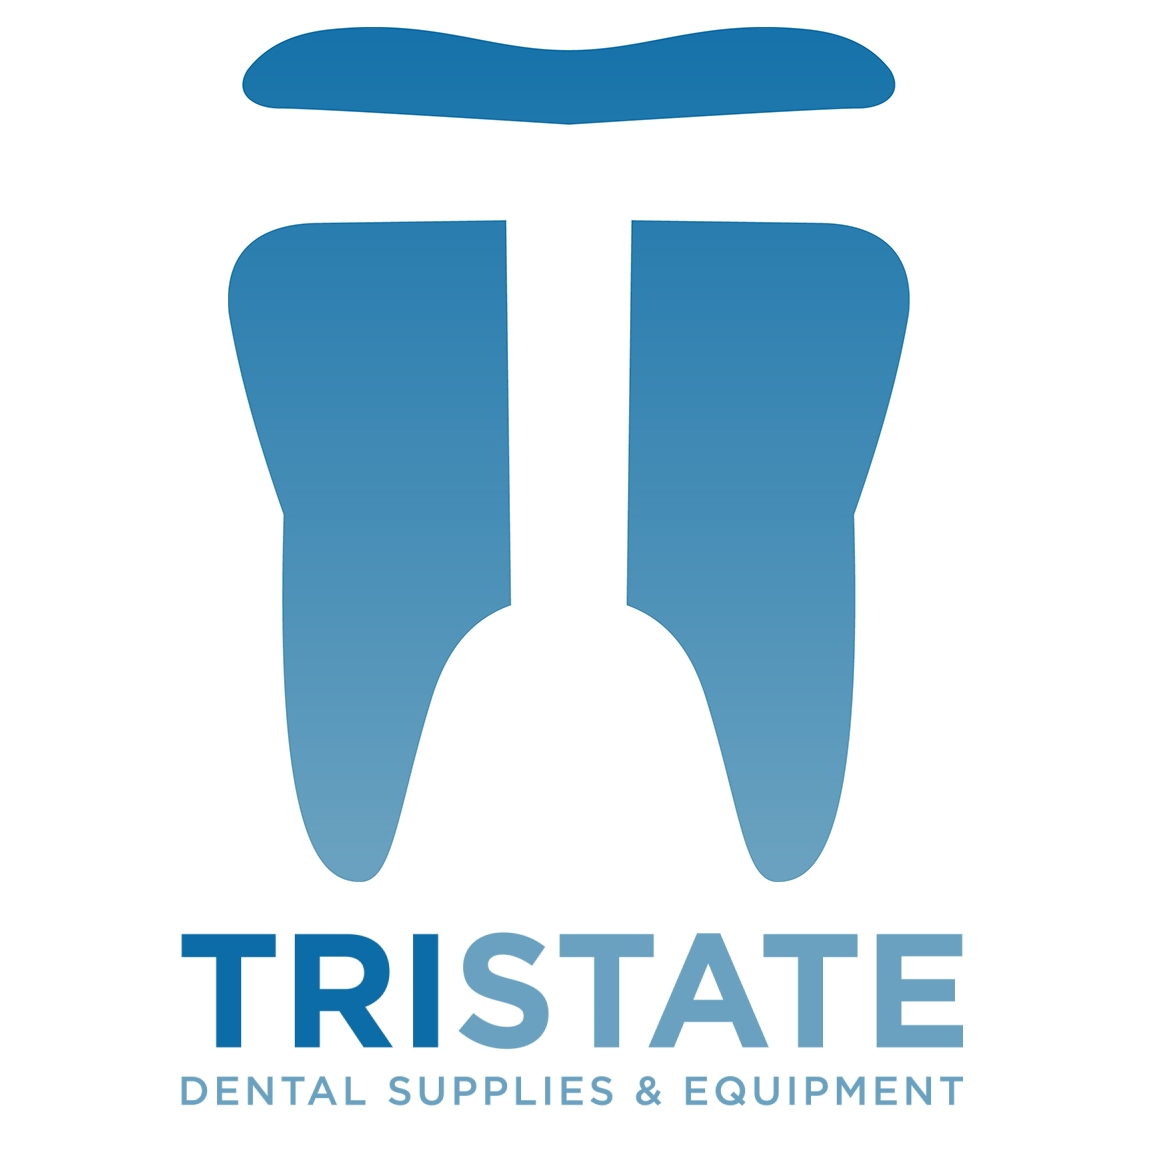 Tristate Dental